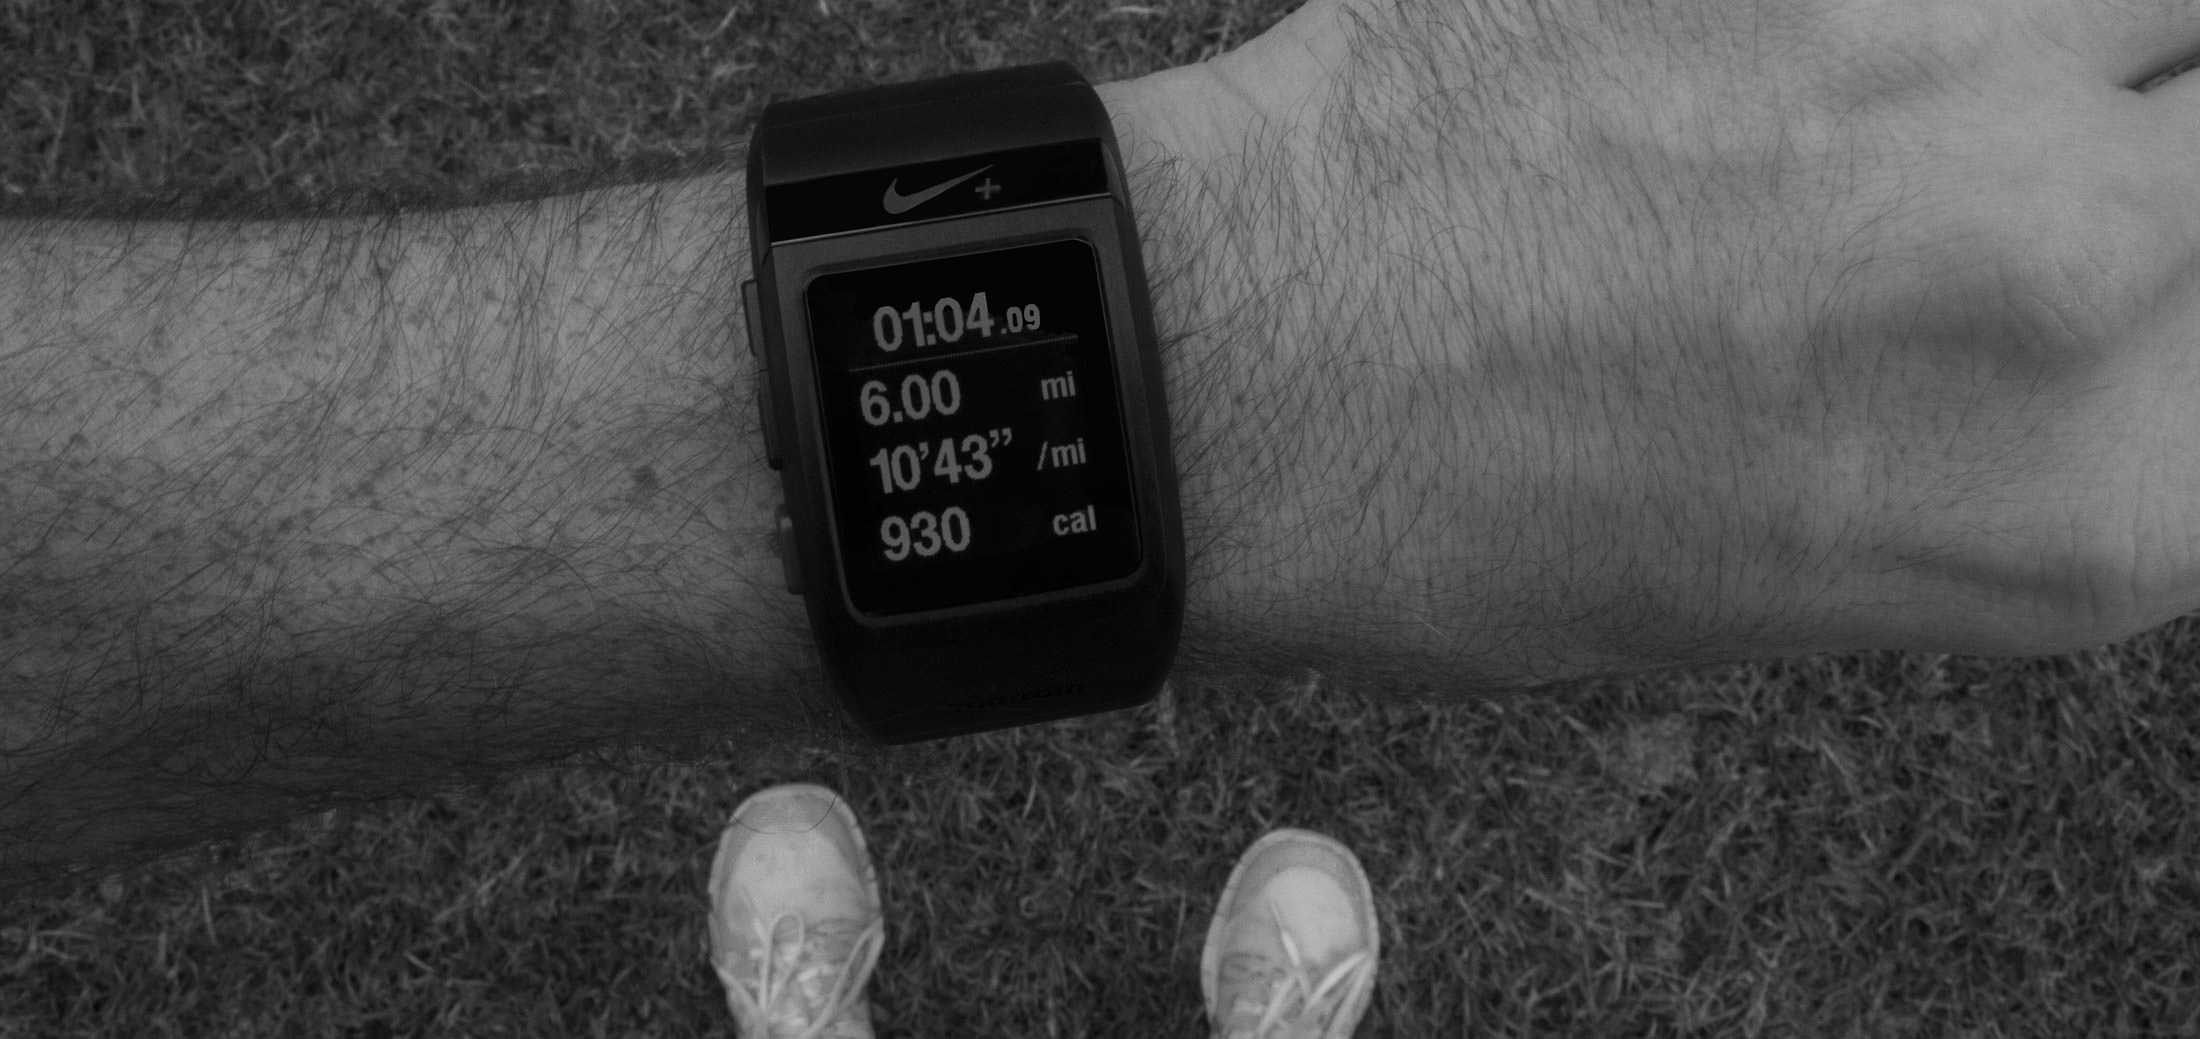 An image of the watch I used to capture my running data.